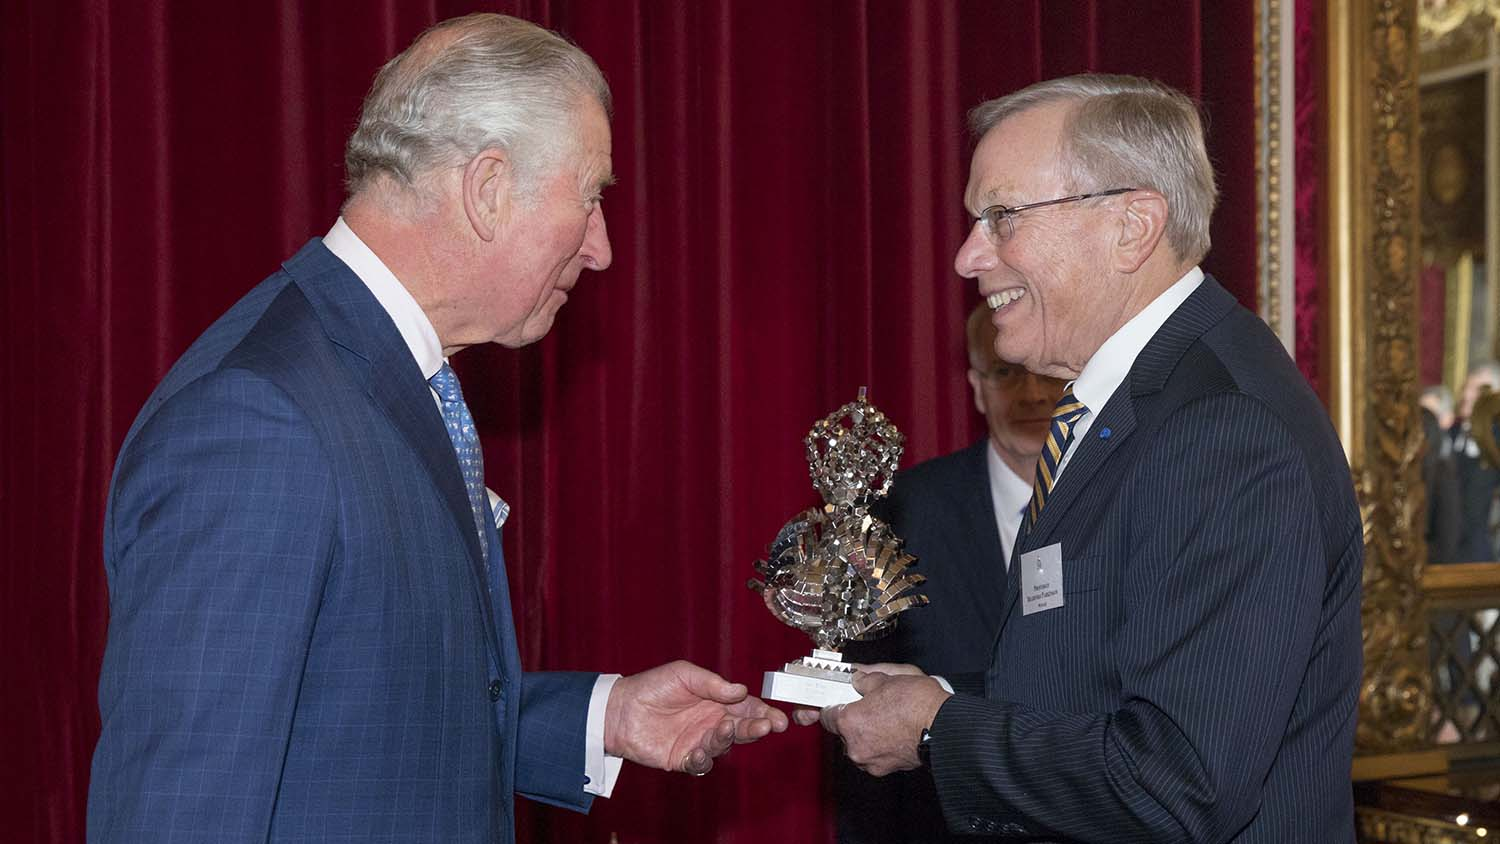 2019 QEPrize trophy presented by HRH The Prince of Wales to Dr Bradford Parkinson